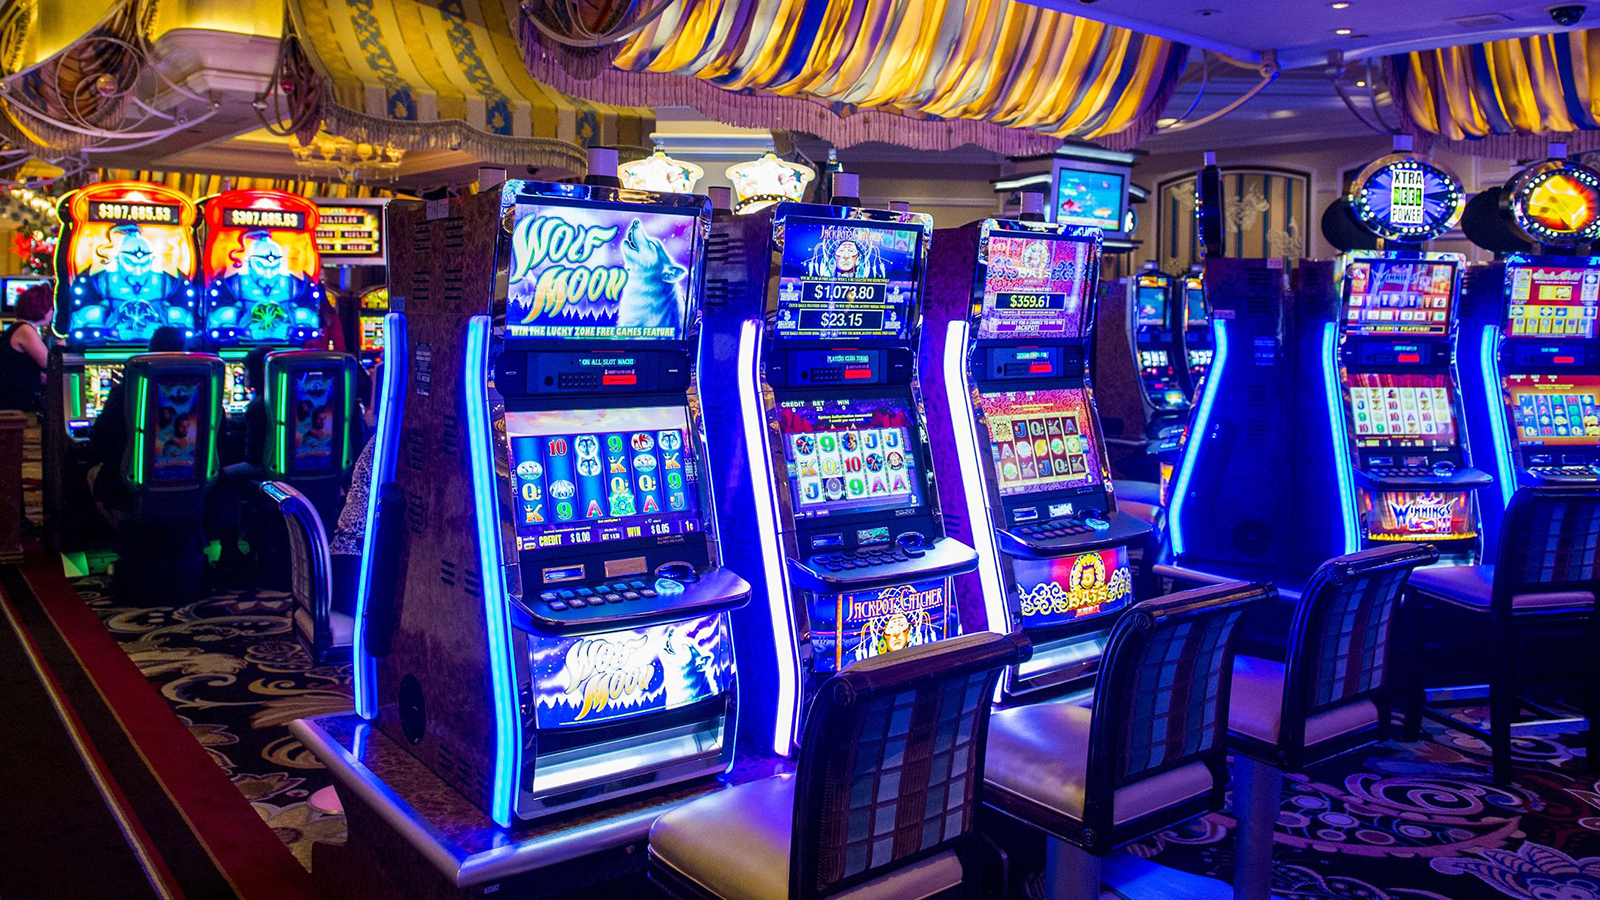 North Carolina lawmakers introduce plan to legalize video gaming